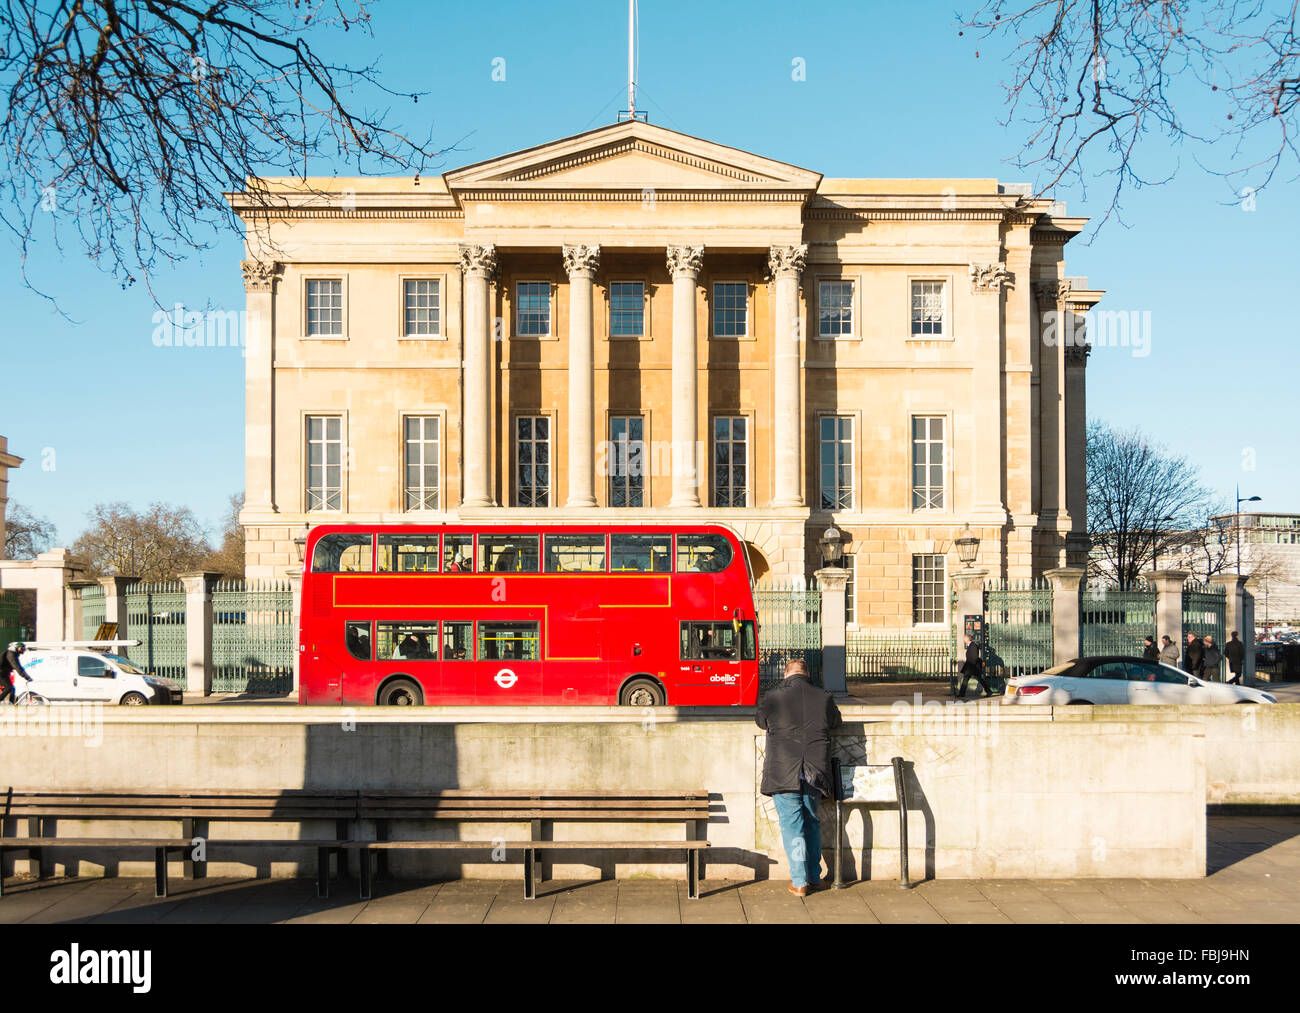 Apsley House, Former home of the Duke of Wellington, Hyde Park Corner, London, UK - Stock Image